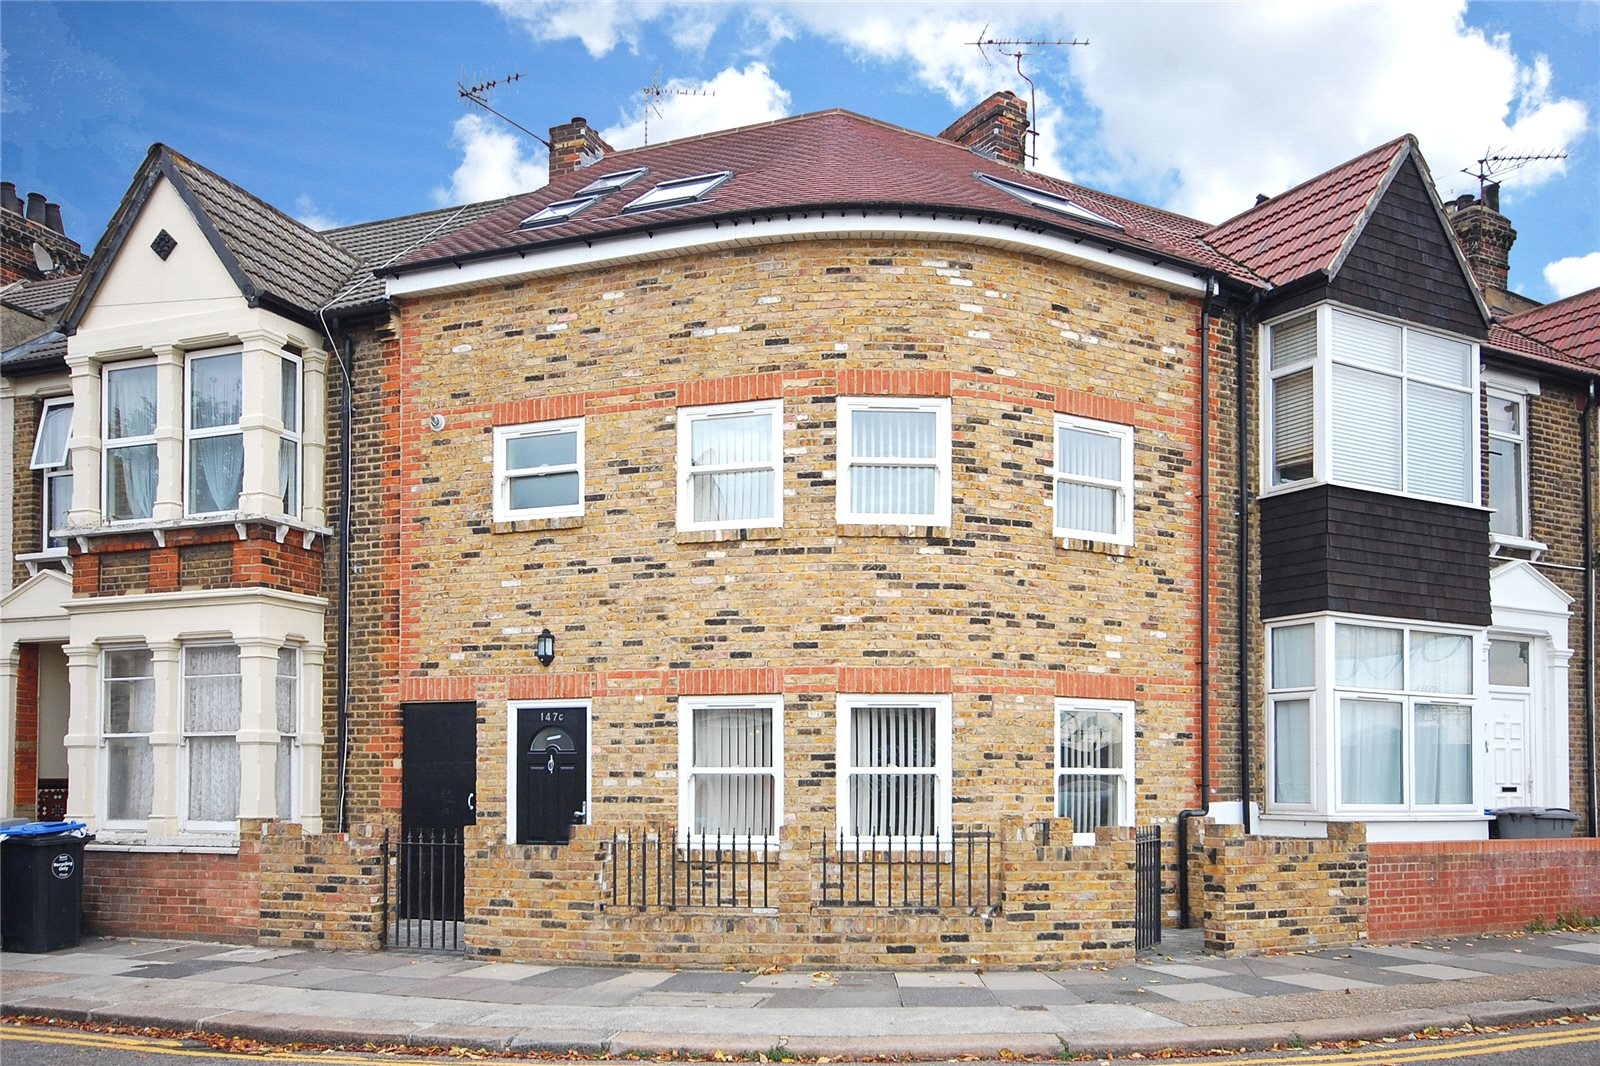 5 Bedrooms Terraced House for sale in Harley Road London NW10